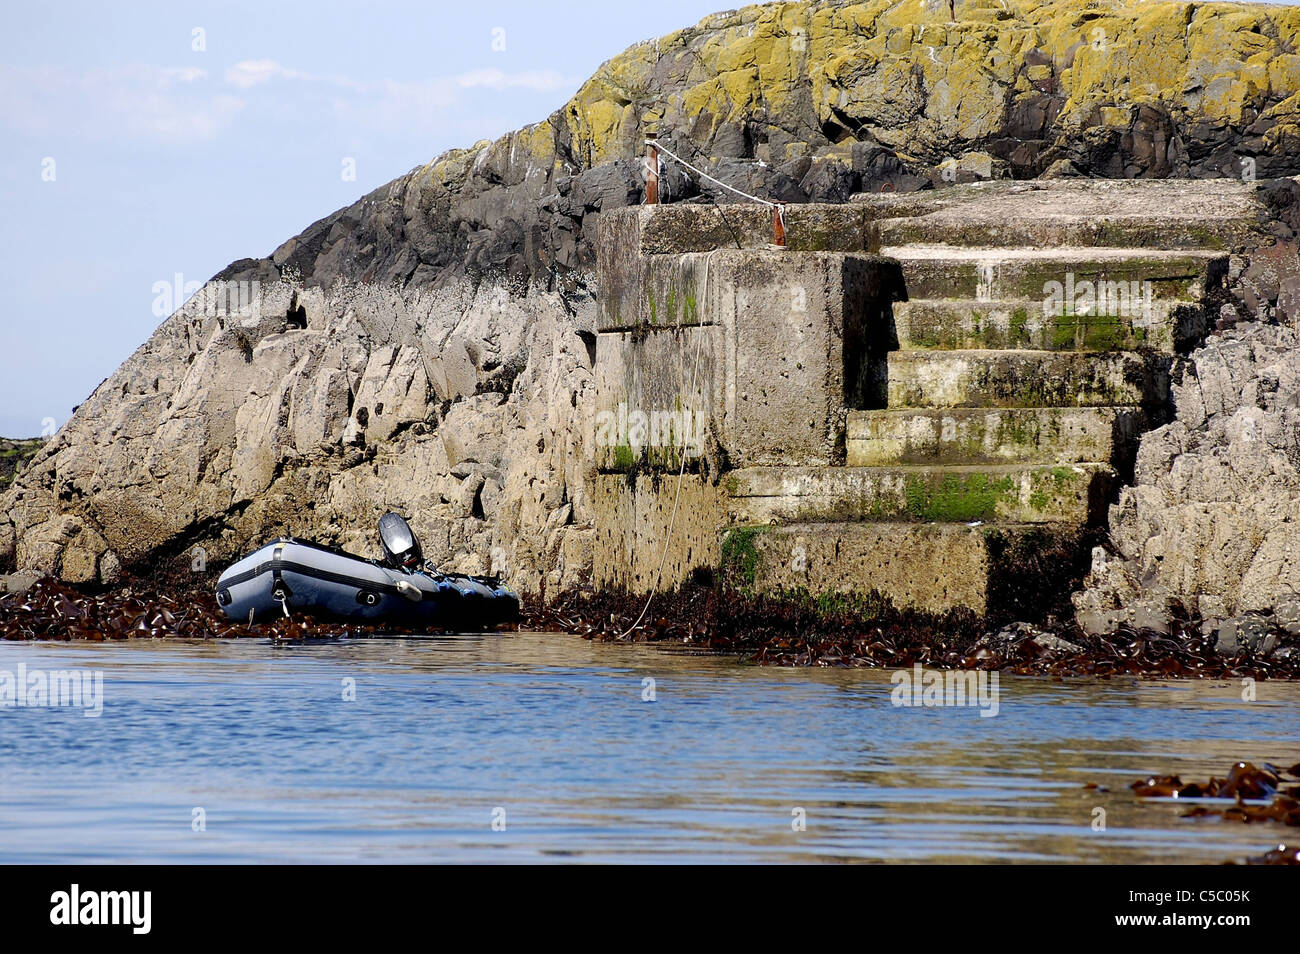 Landing stage on the Farne Islands with dinghy and outboard motor tied up at foot of it. - Stock Image